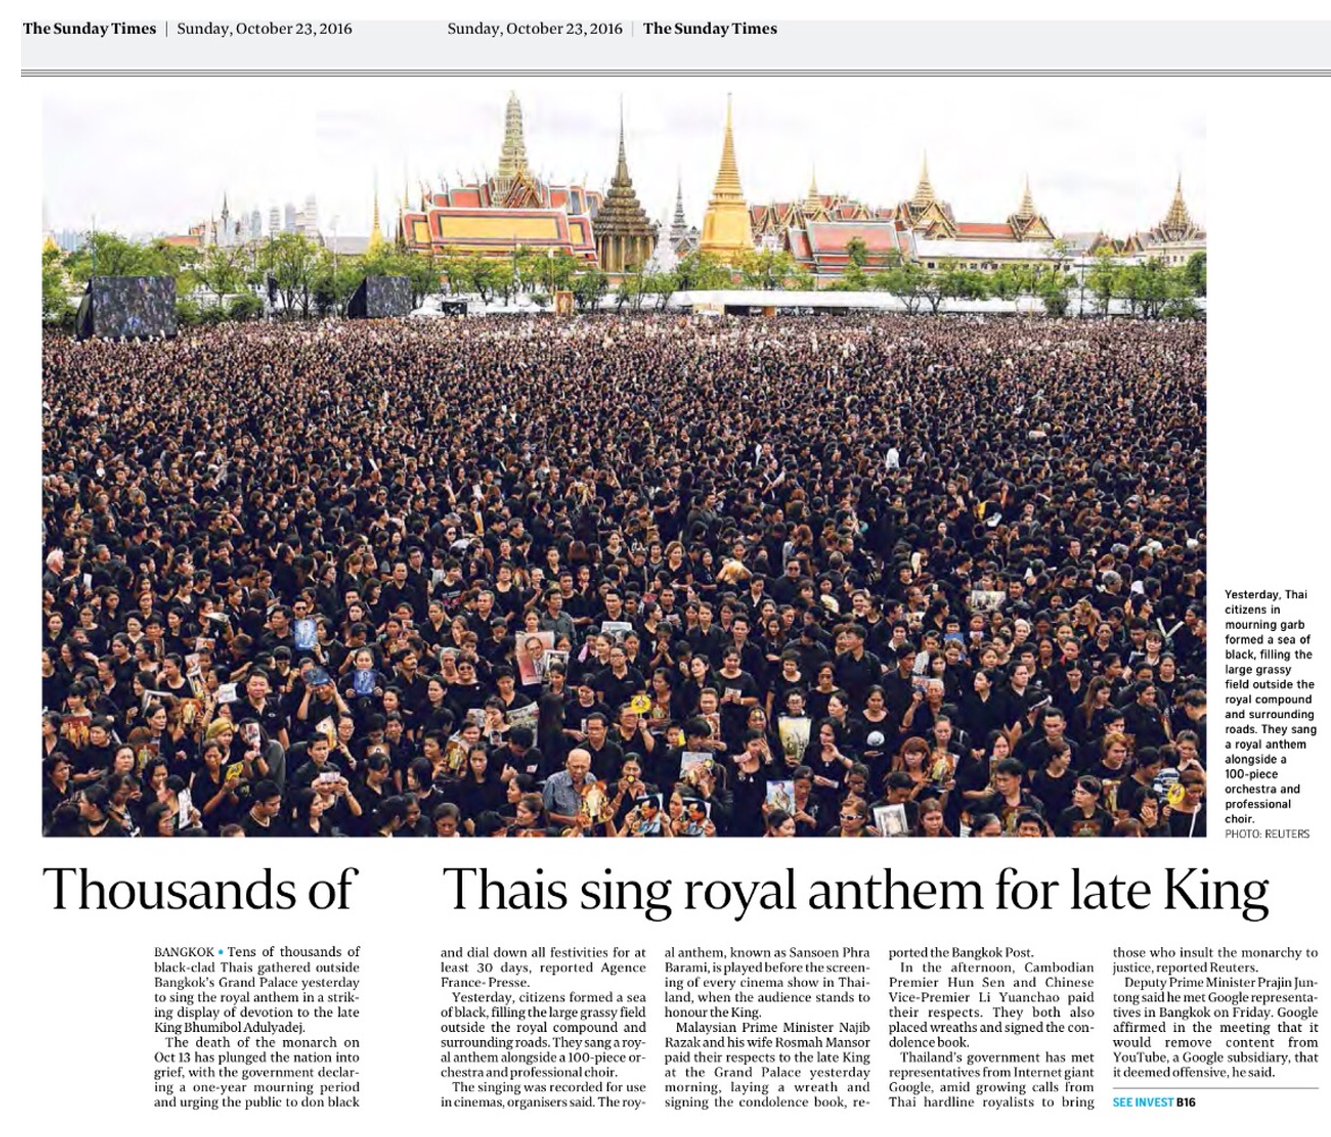 Winning with Honour  l  Straits Times 20161023  l  Thousands of Thais sing royal anthem for late King.png